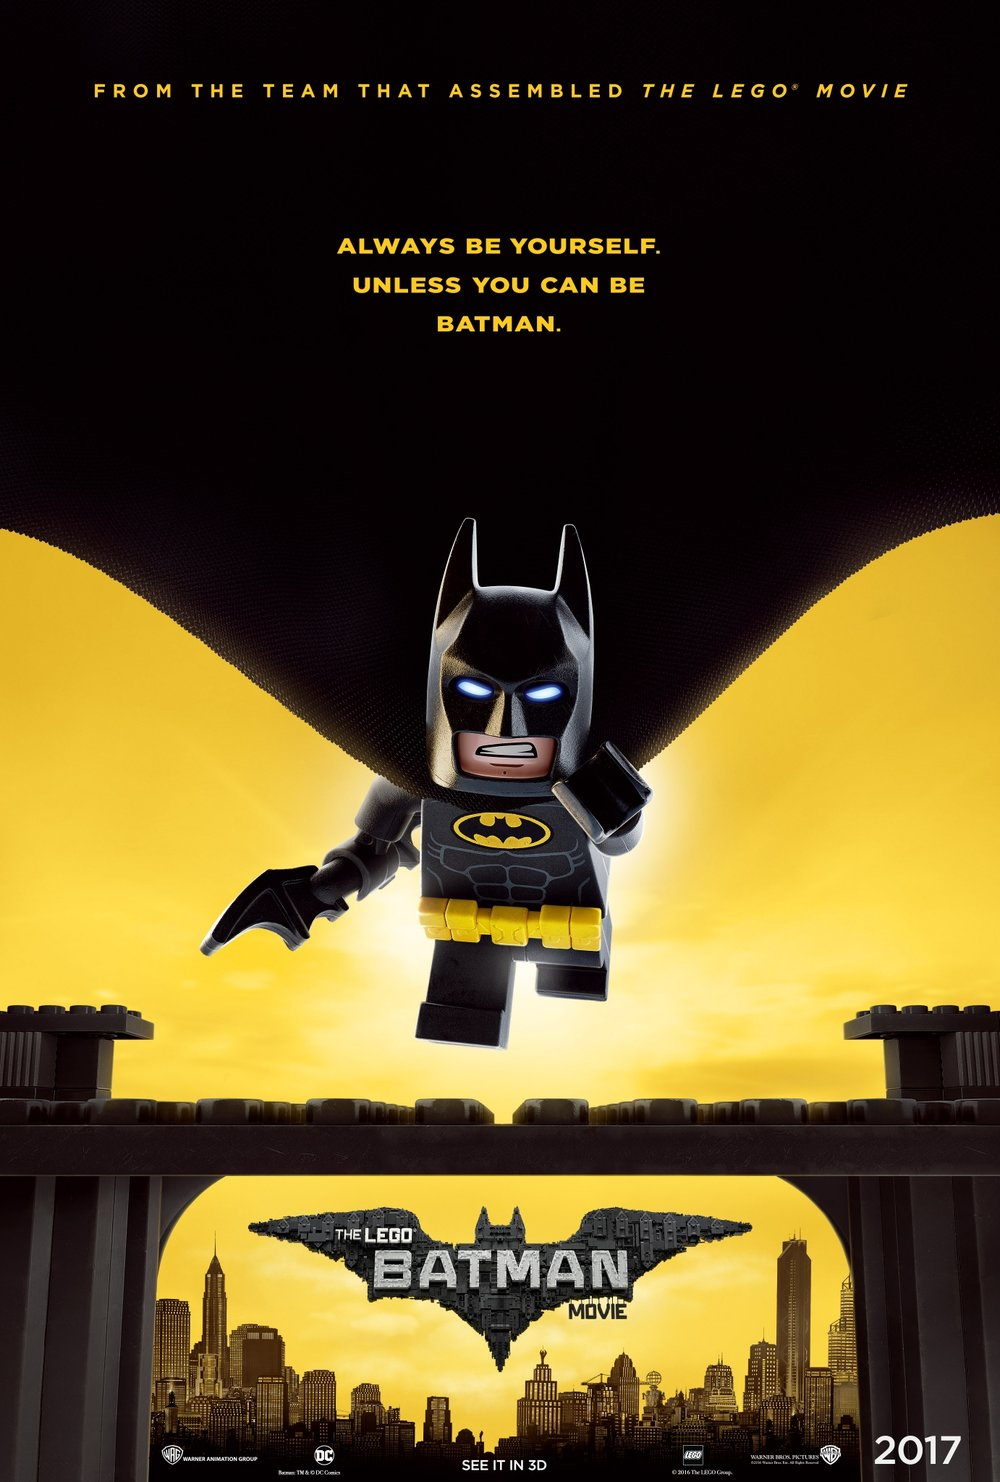 The-Lego-Batman-movie-poster.jpg